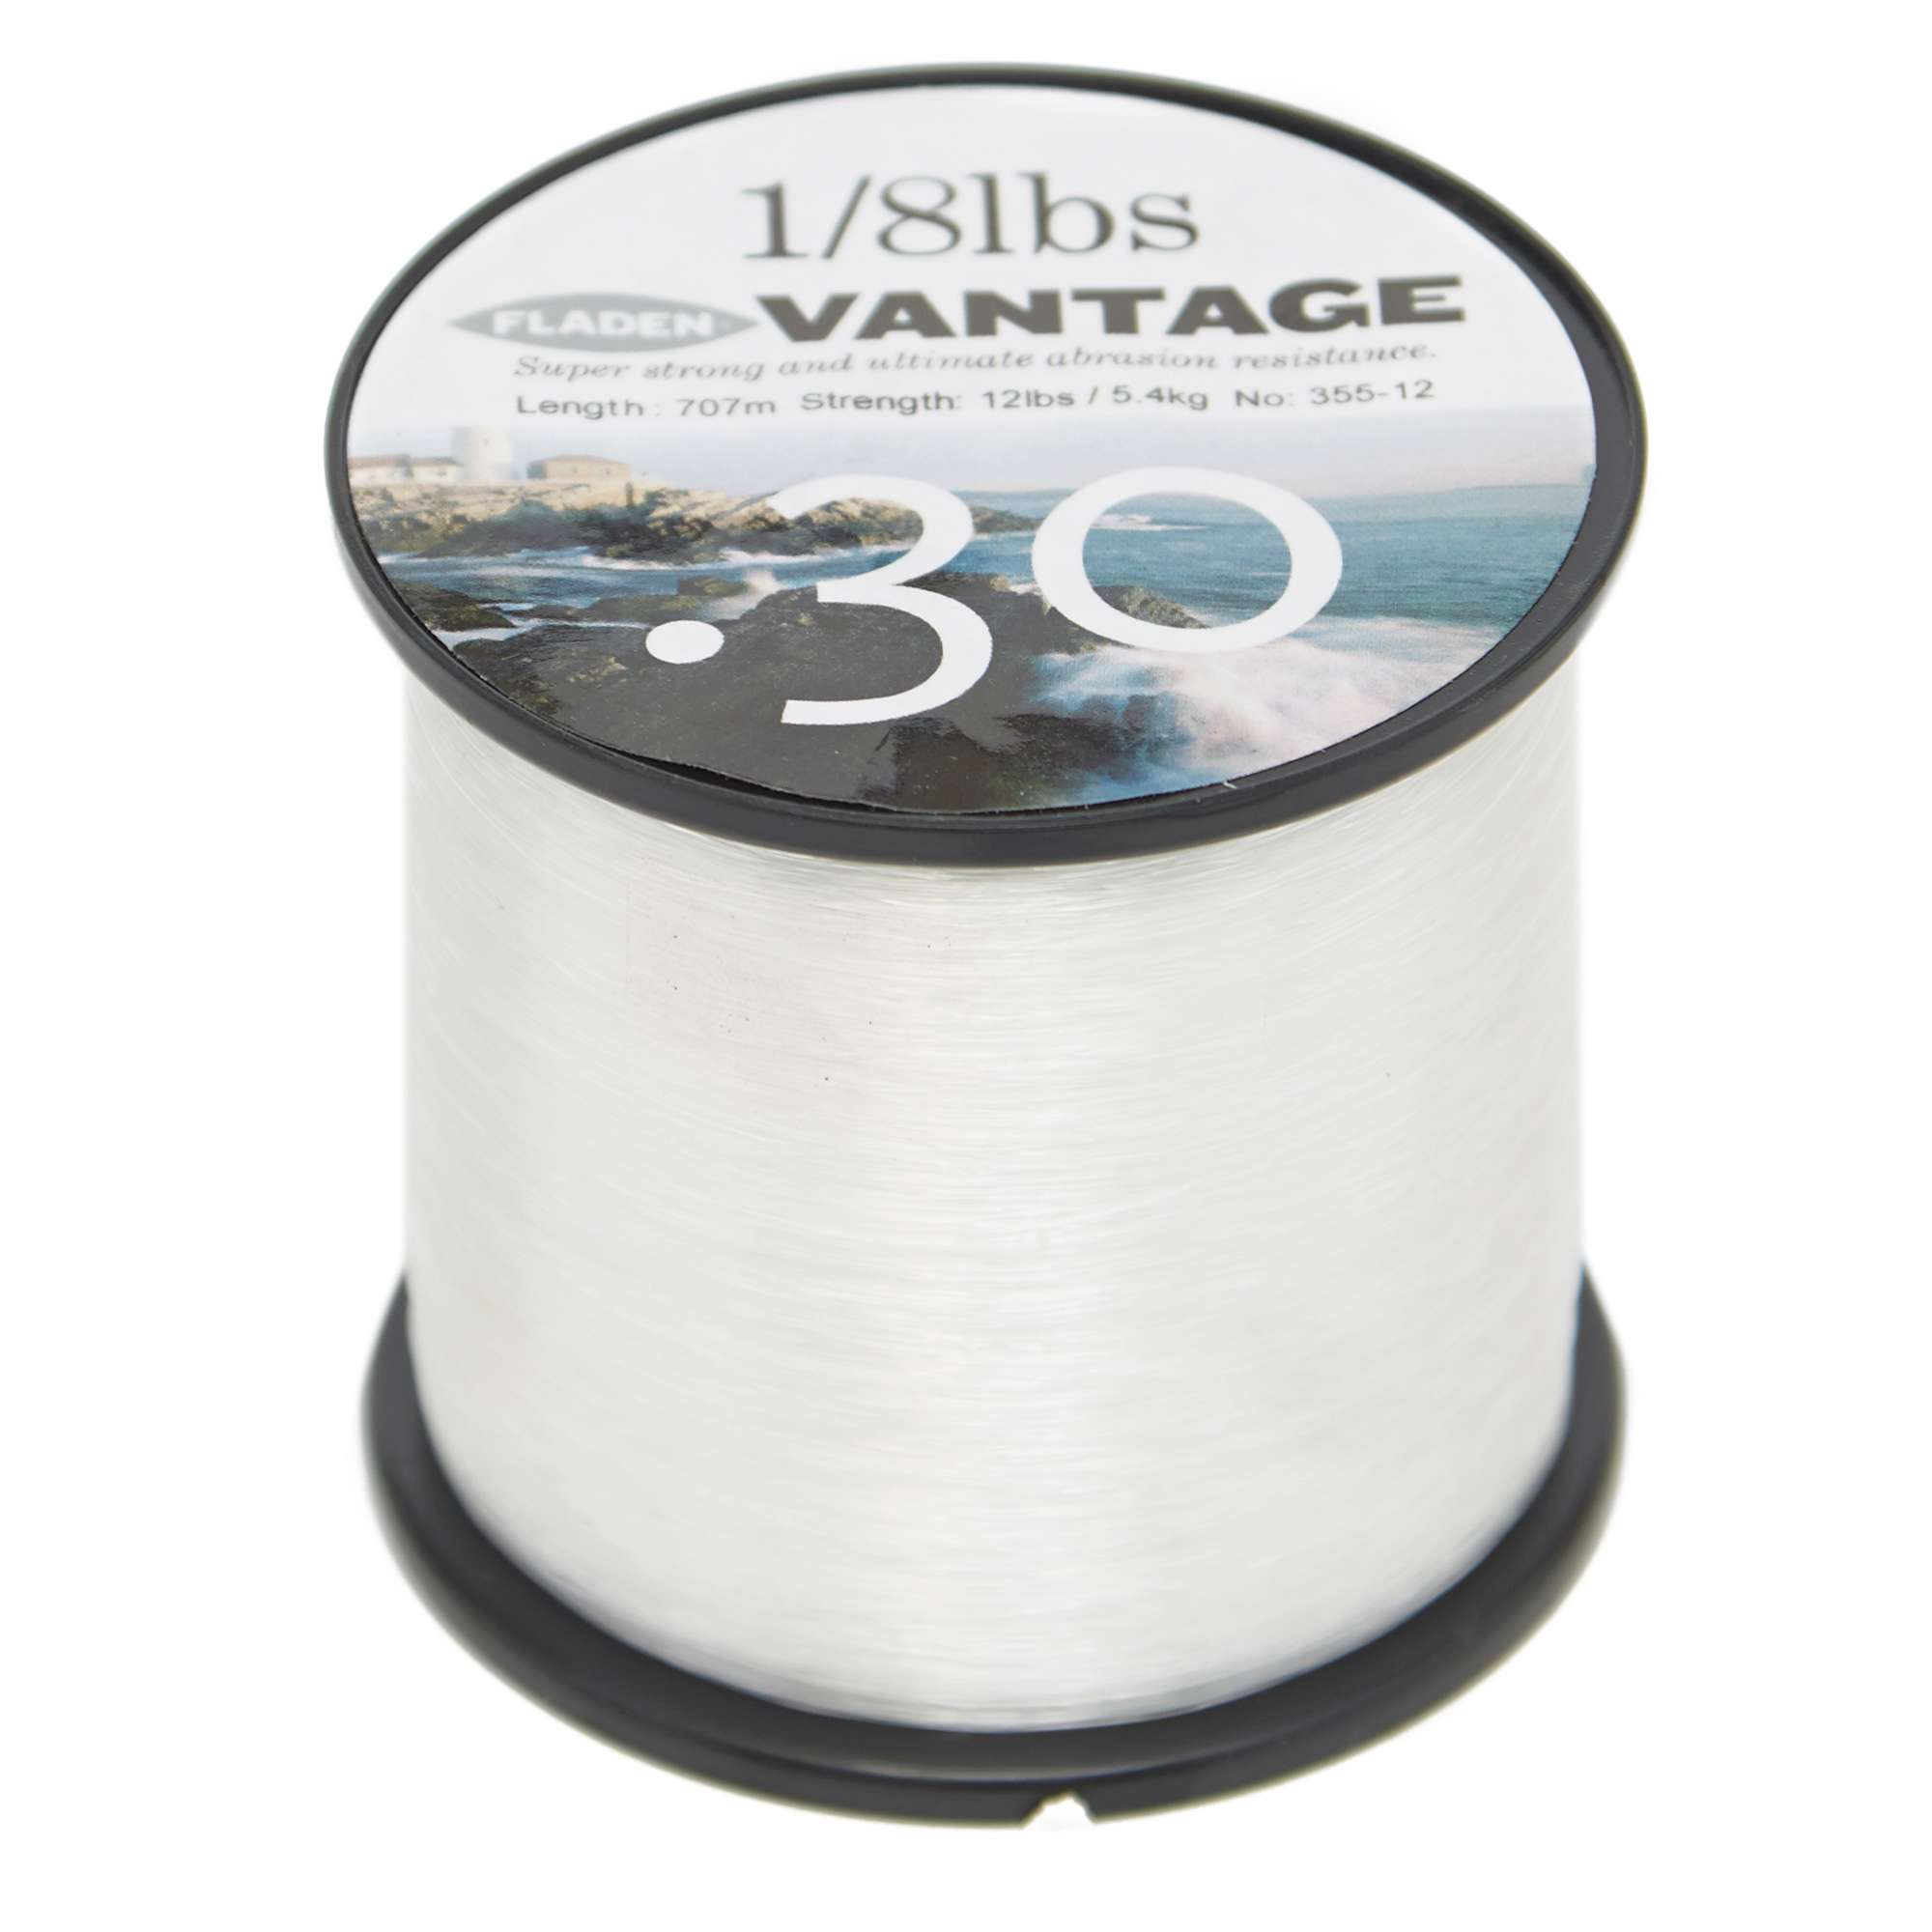 FLADEN Vantage Pro 12lb Clear Fishing Line